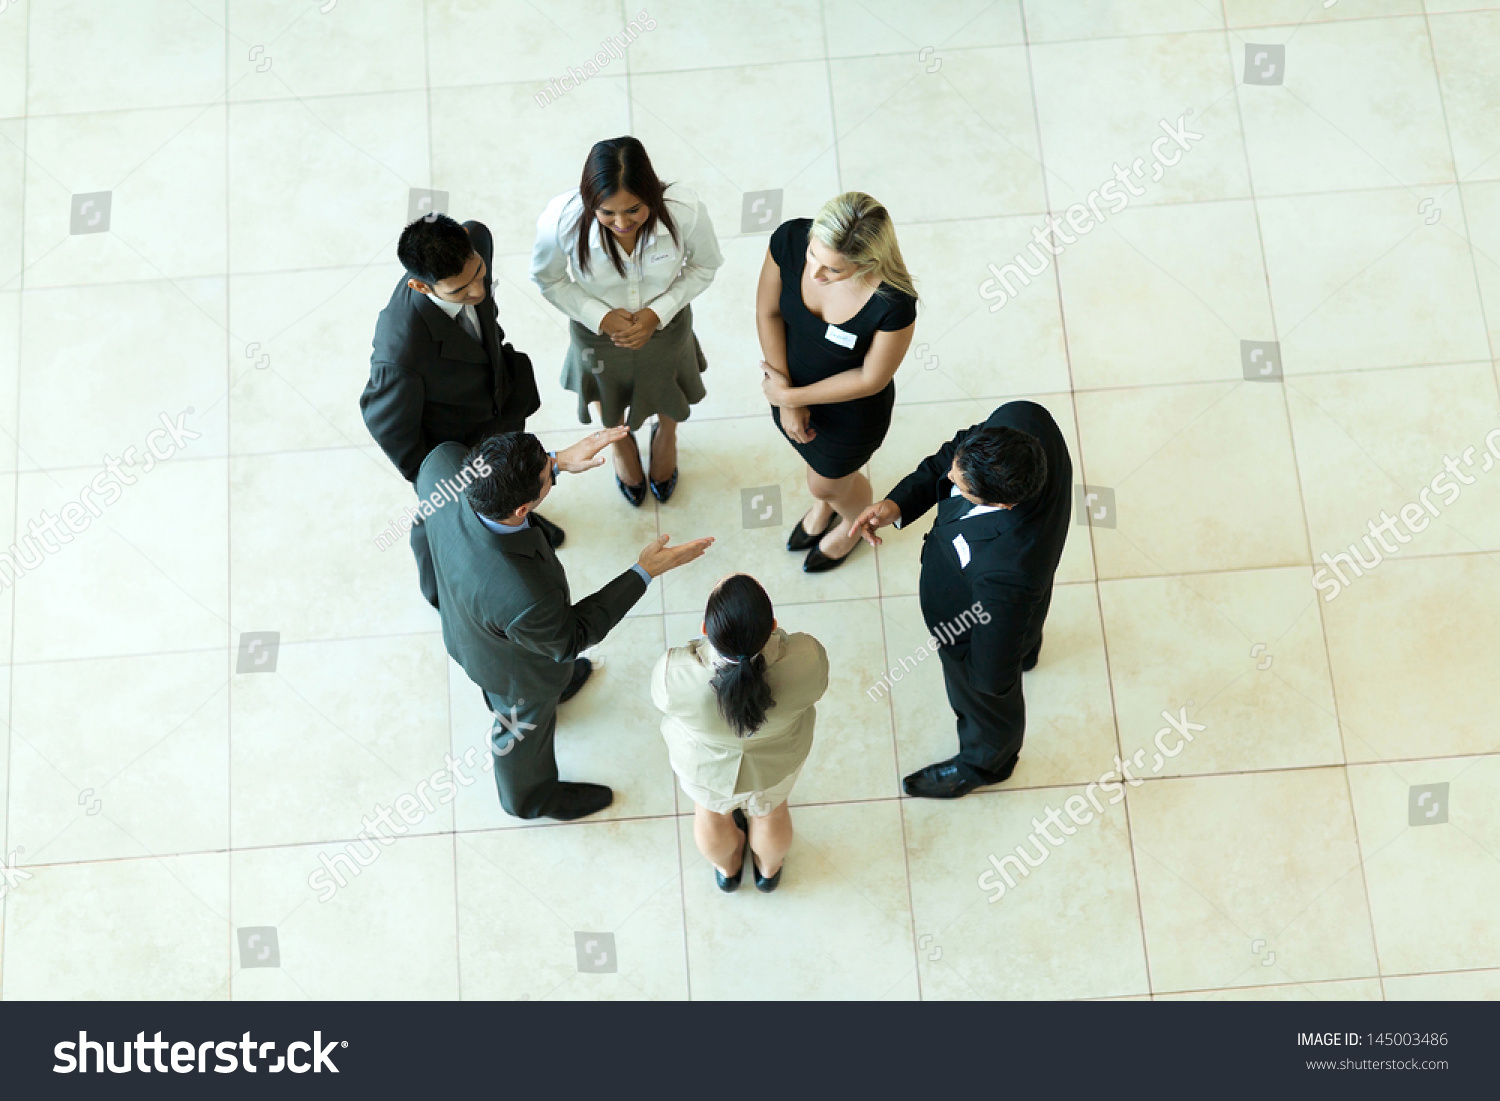 Overhead View People Having Business Meeting Stock Photo